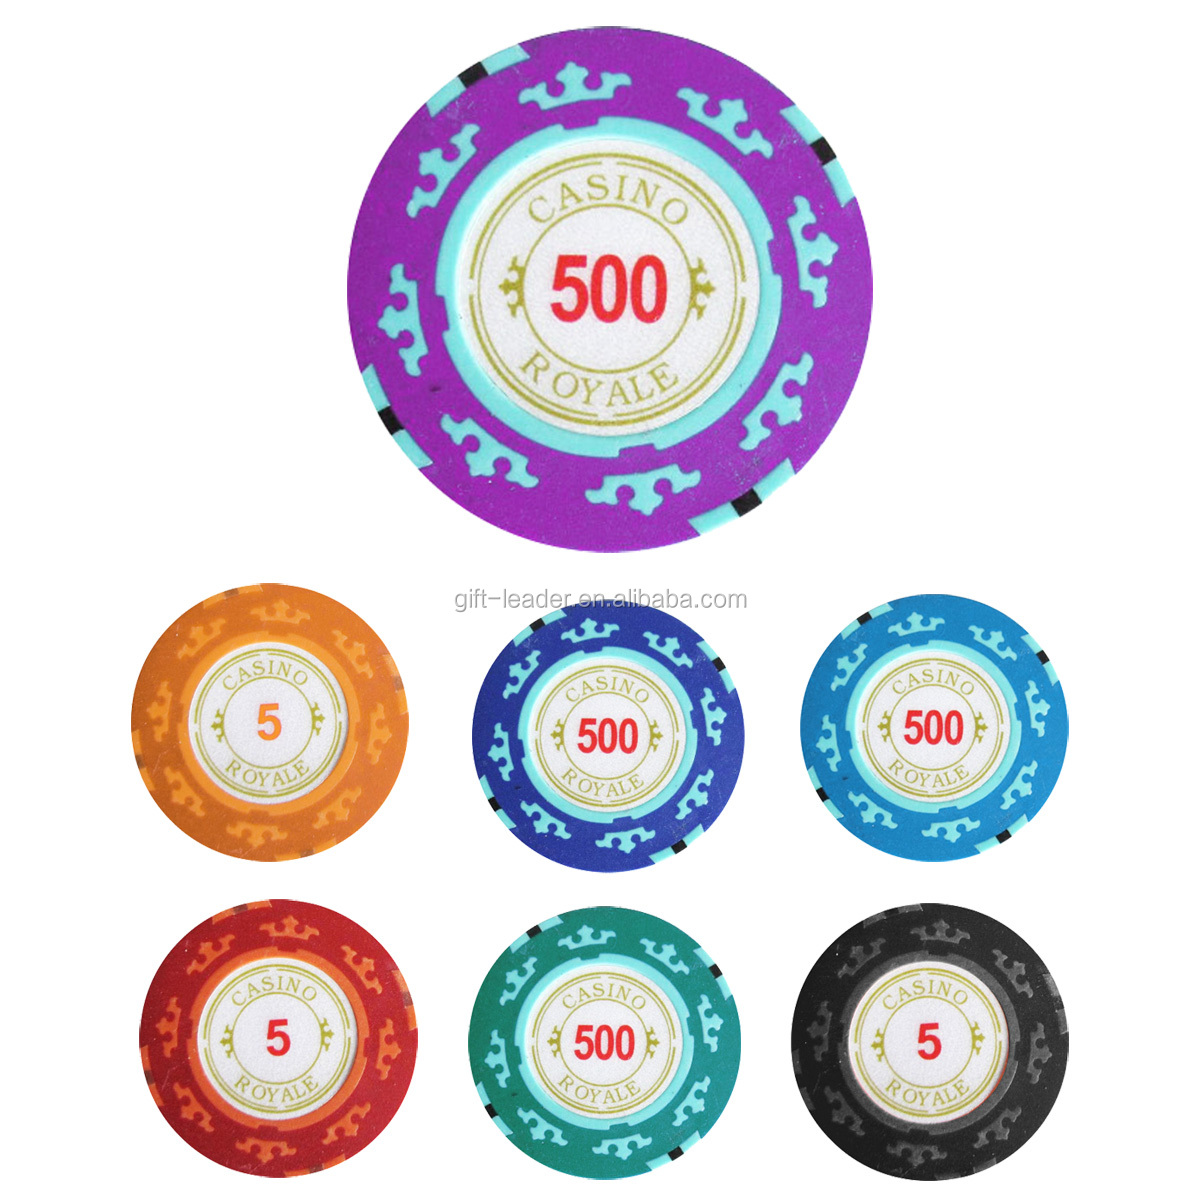 40 mm size standard double sides OEM print premium gamble cheap diameter striped mini plastic clay casino custom poker chips